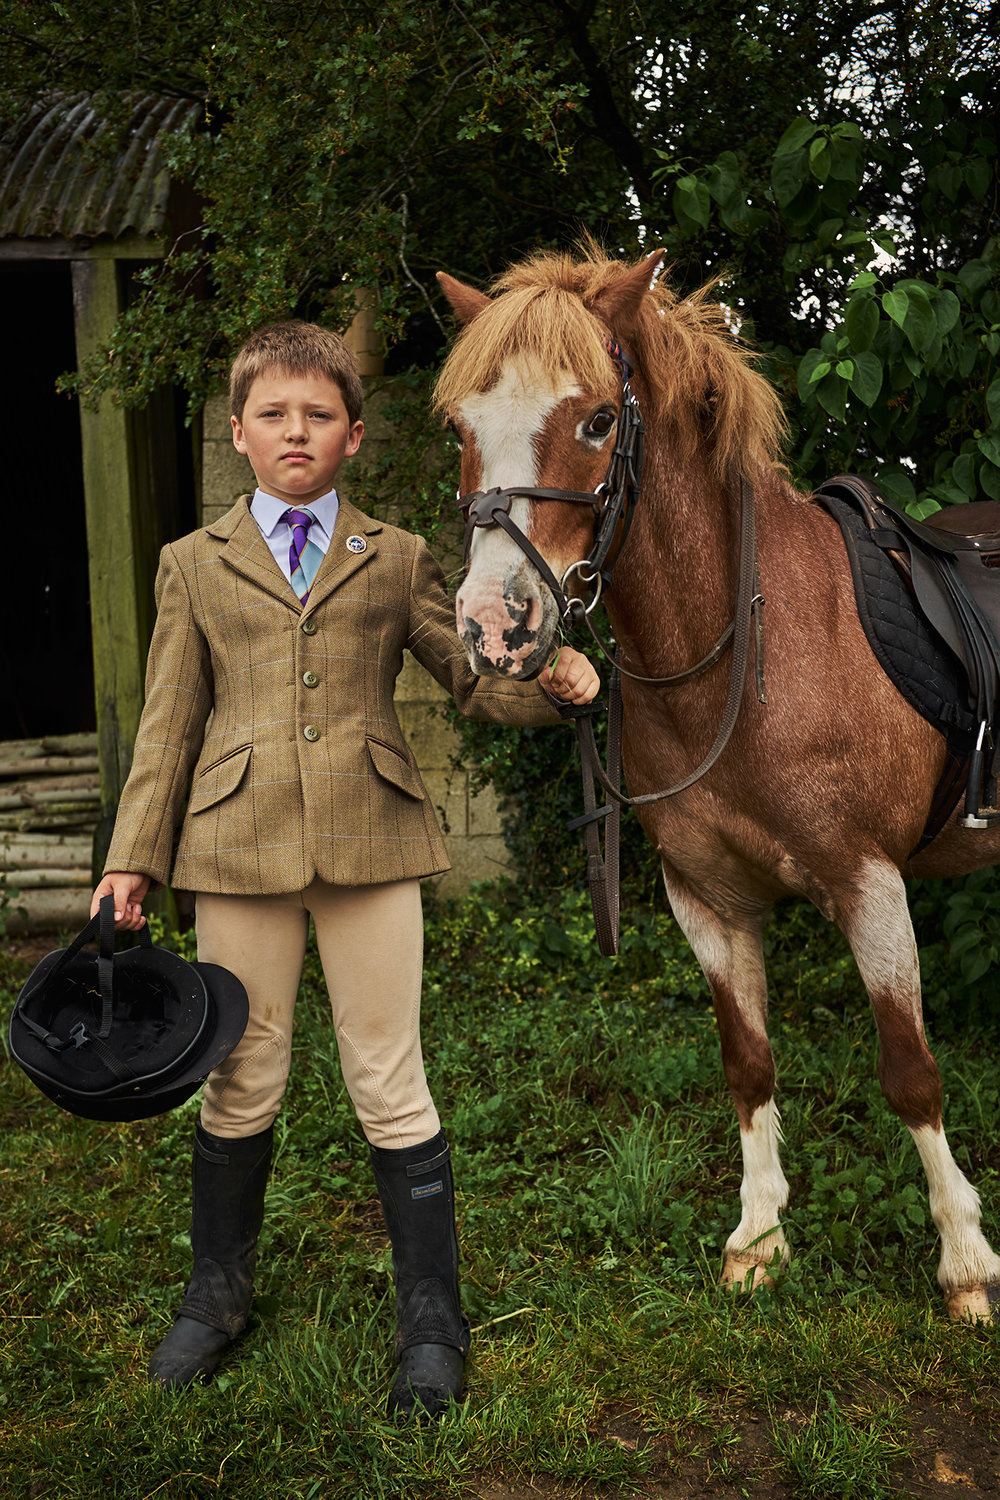 Boy with Pony photographed by Chris Floyd represented by Flock